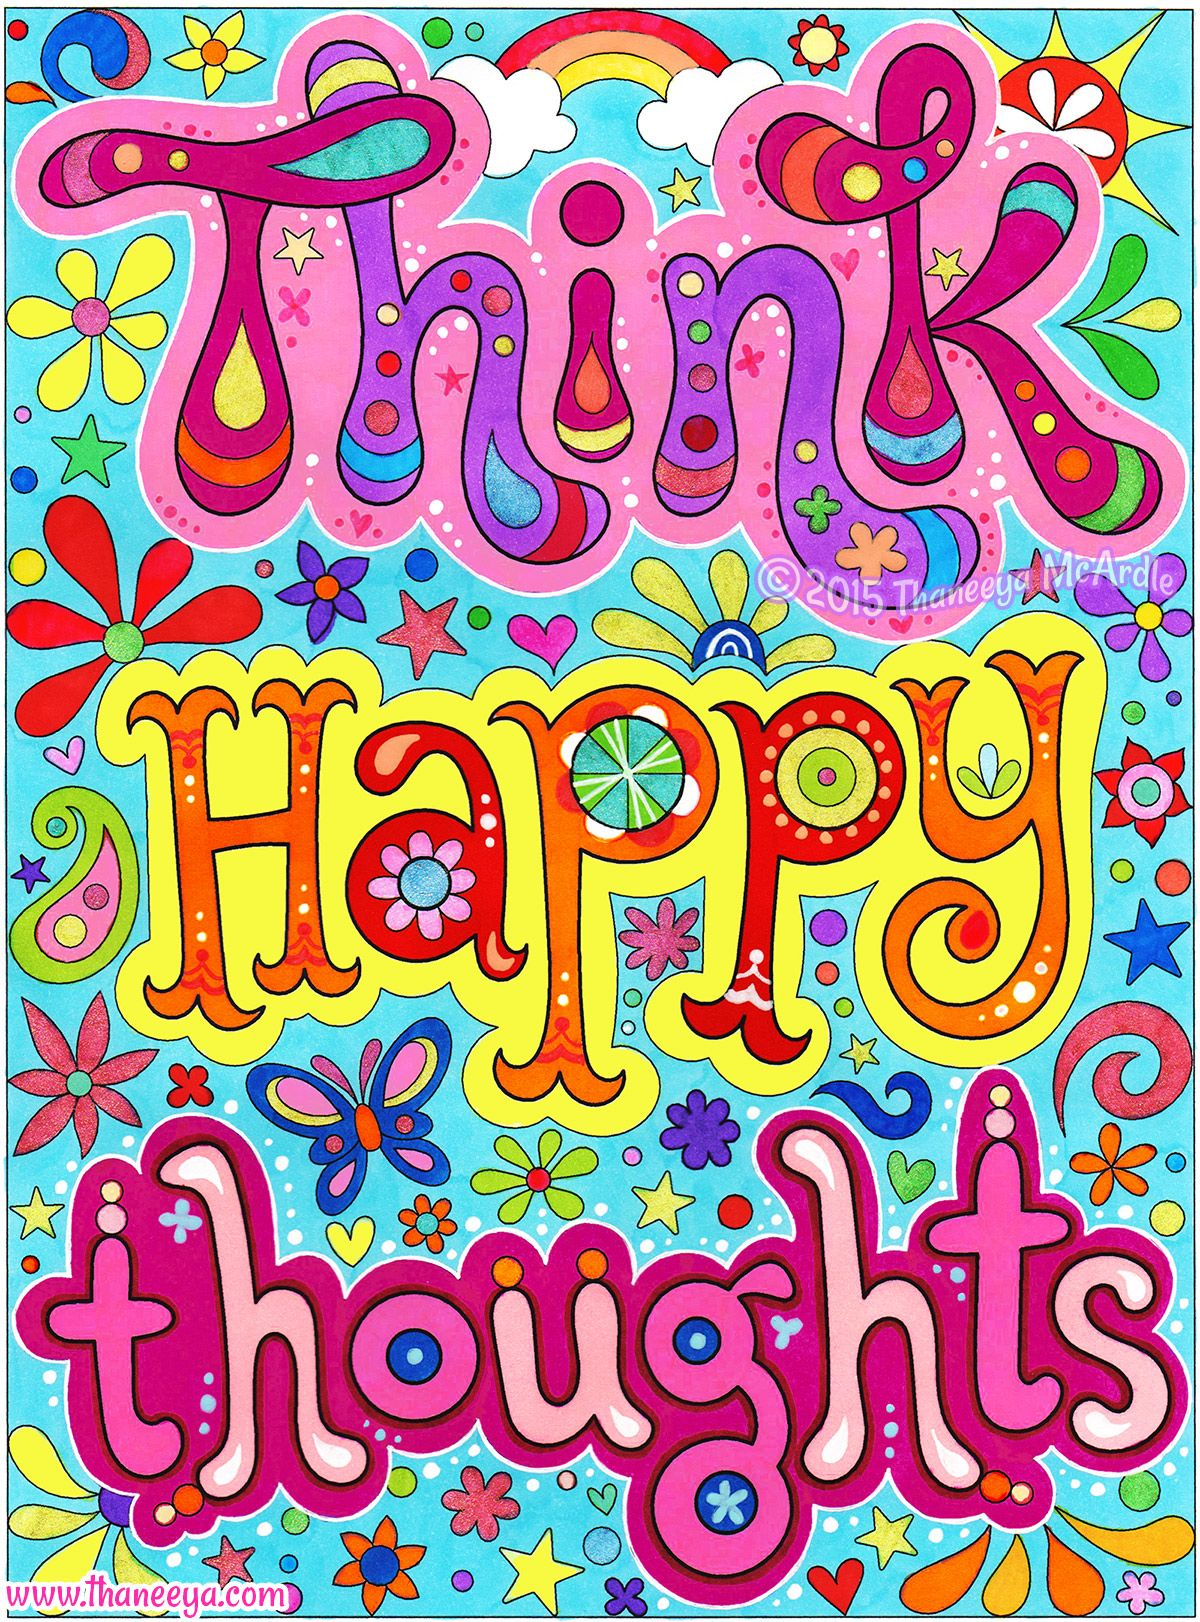 Lilly Pulitzer Quotes Wallpaper Think Happy Thoughts This Is A Page From My Good Vibes